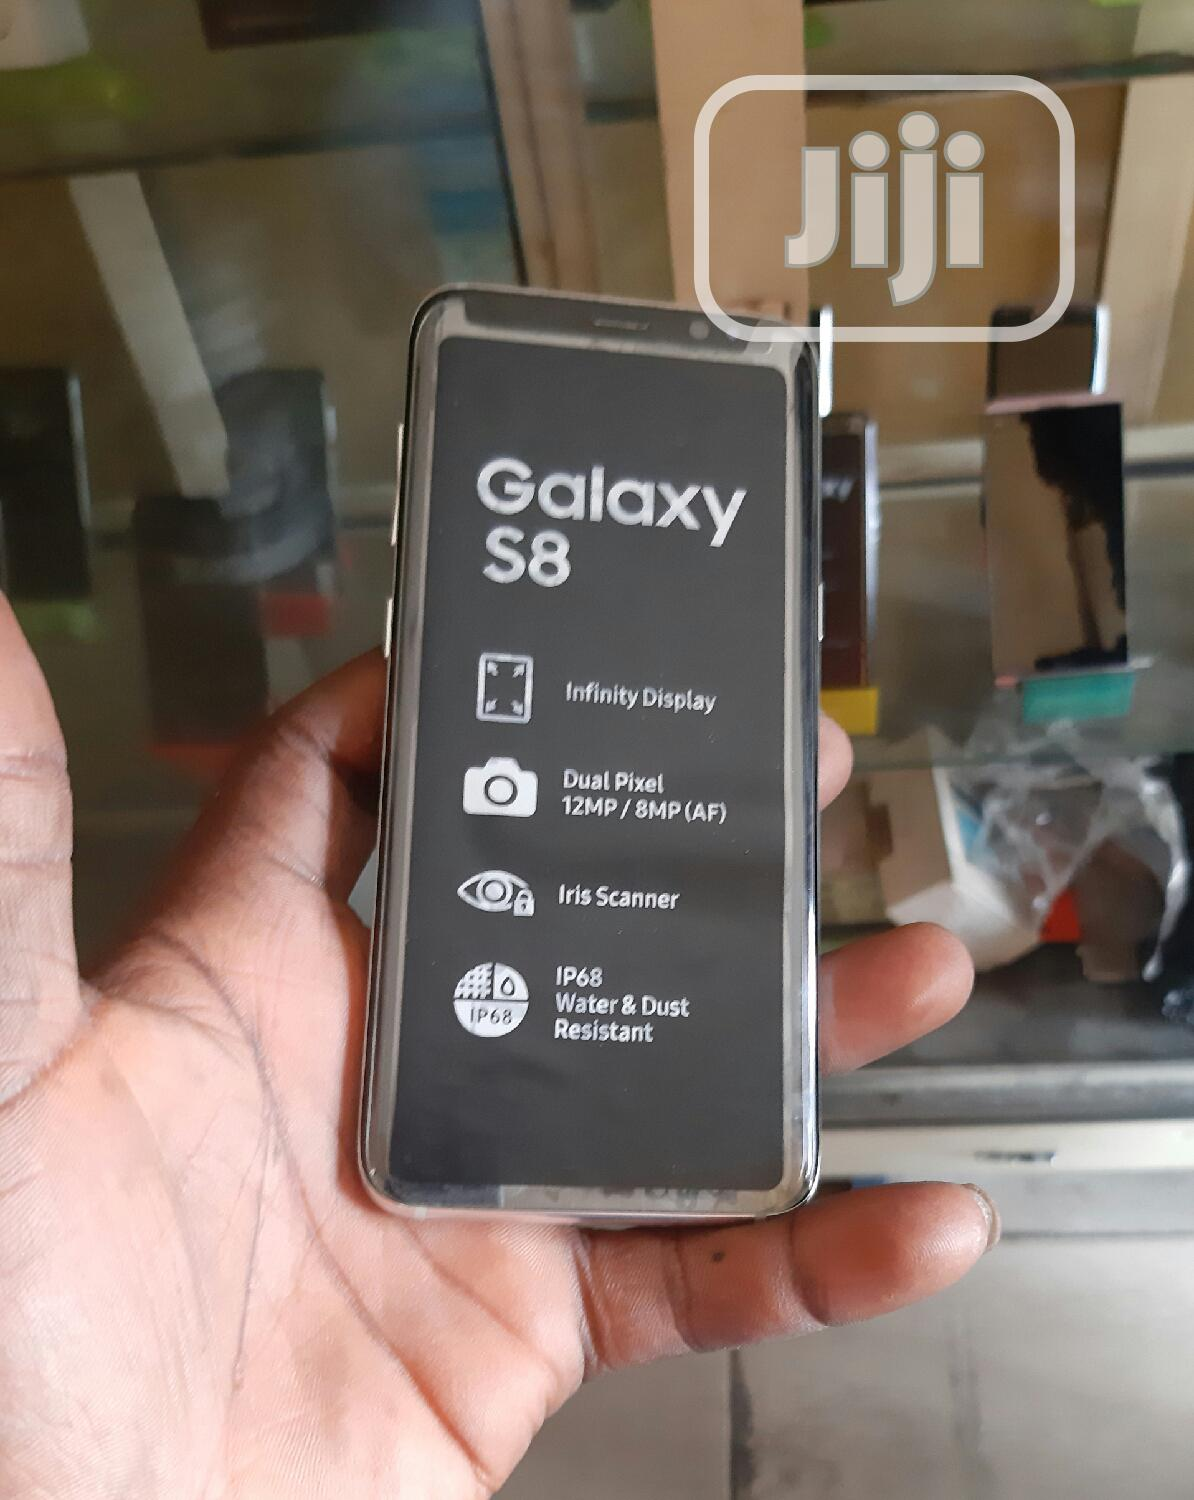 Samsung Galaxy S8 64 GB | Mobile Phones for sale in Ibadan, Oyo State, Nigeria